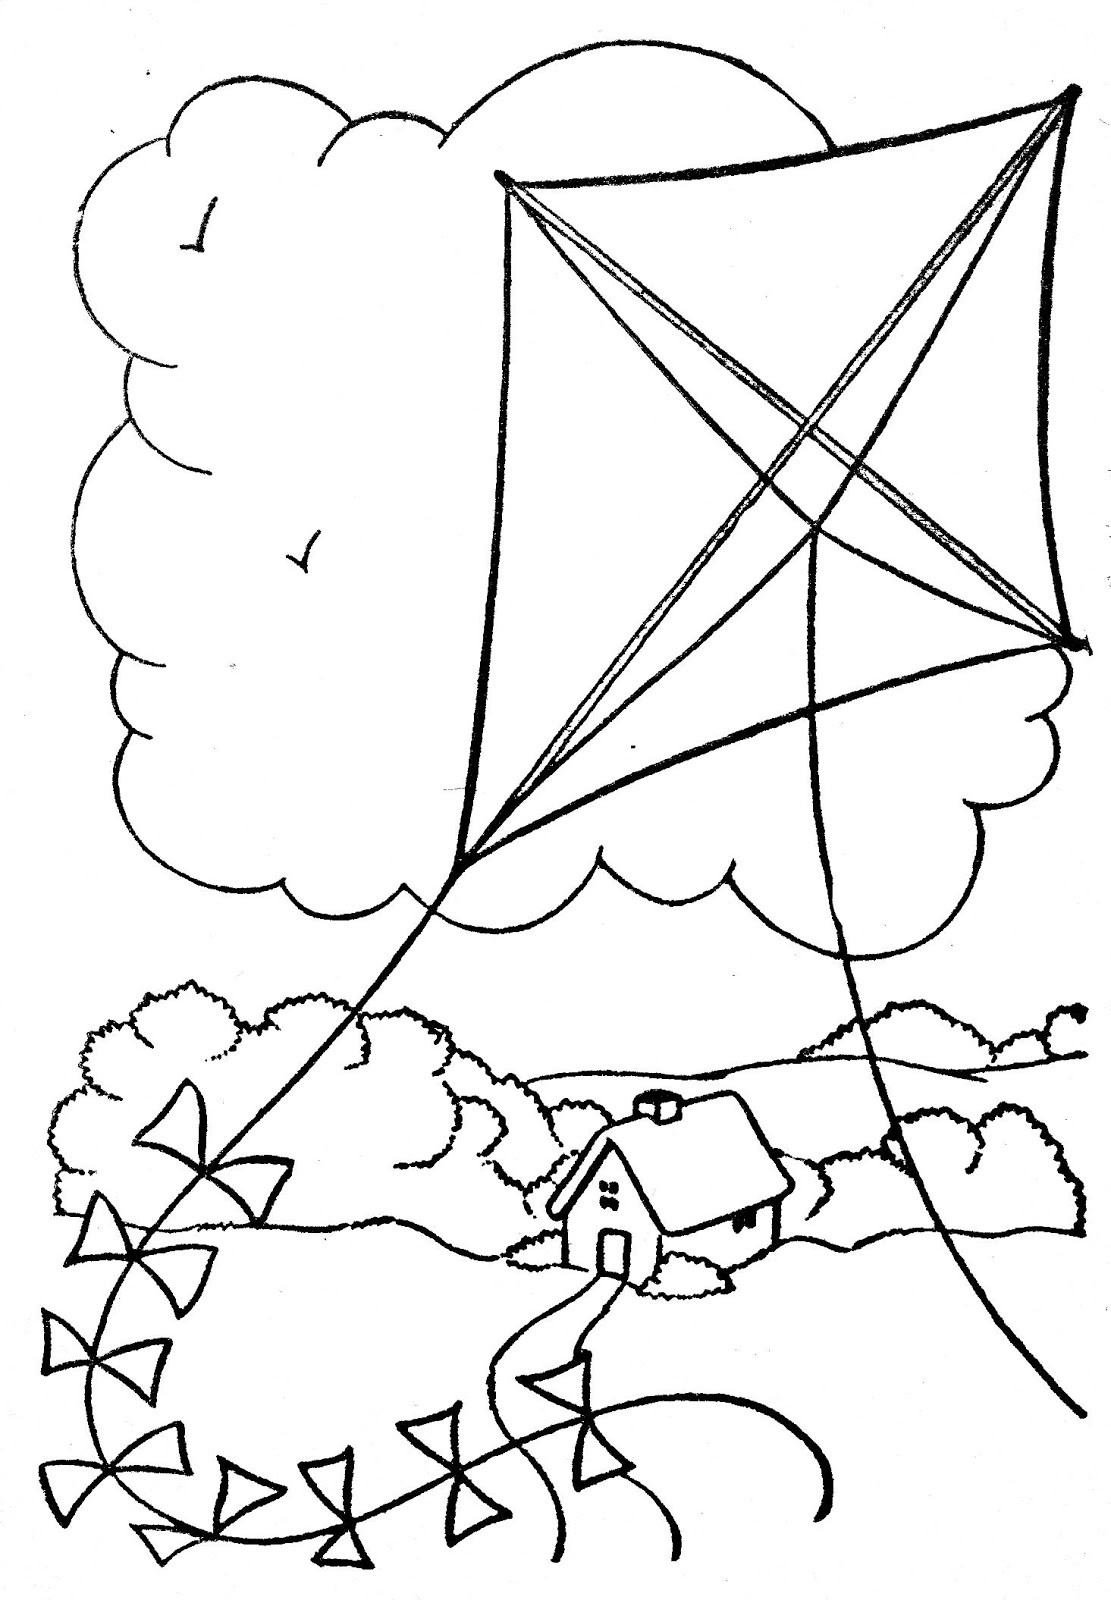 Skyrim lydia coloring pages sketch coloring page for Lydia coloring page